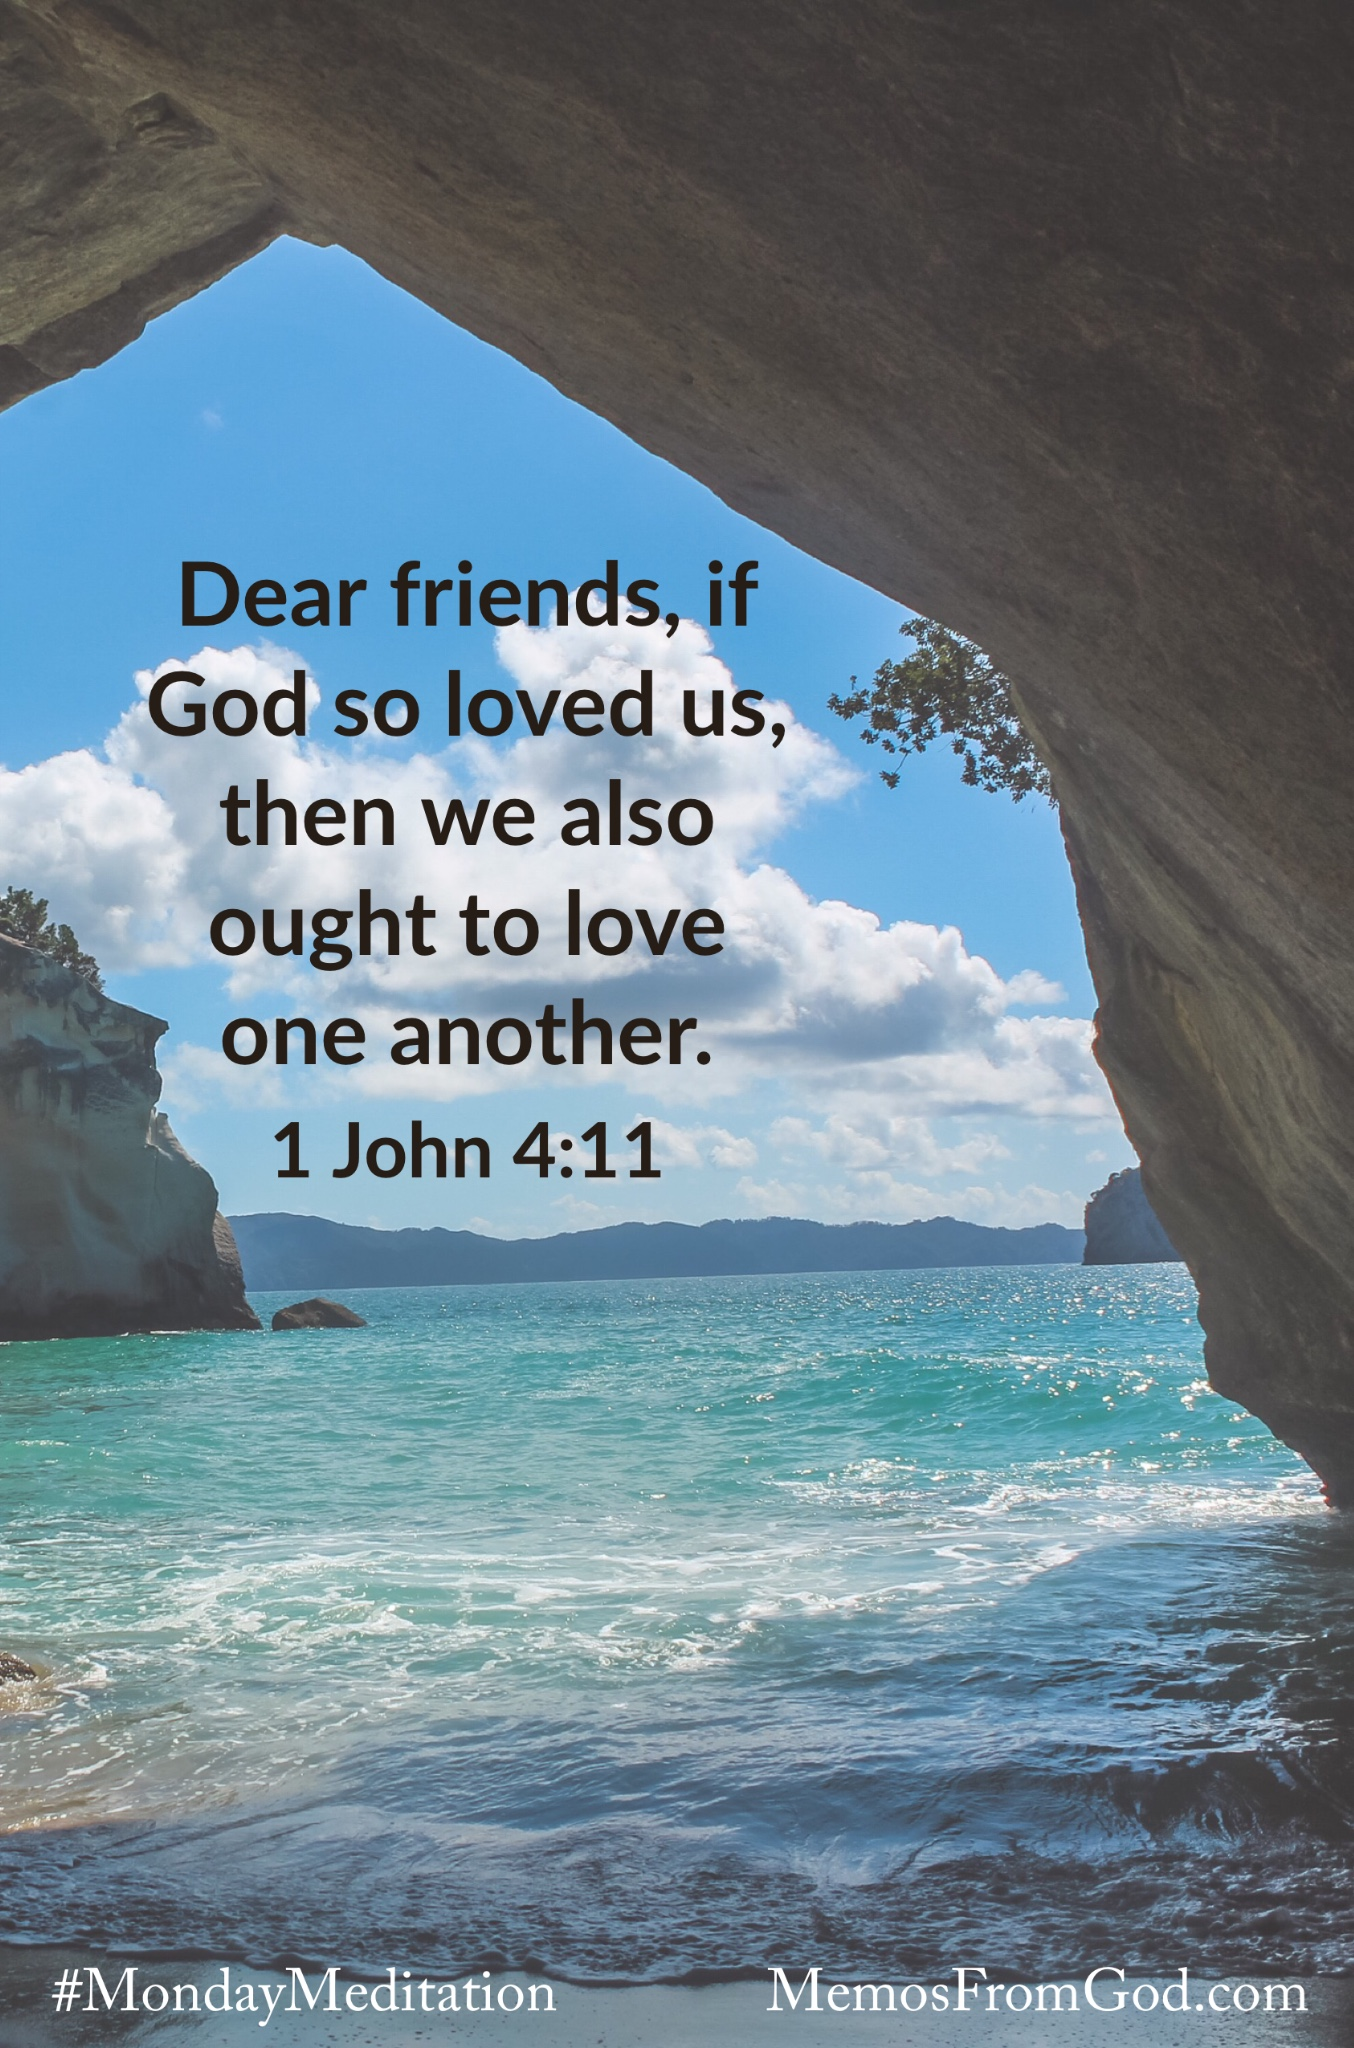 Looking through a natural stone archway to teal water with mountains on the horizon. Caption: Dear friends, if God so loved us, then we also ought to love one another. 1 John 4:11